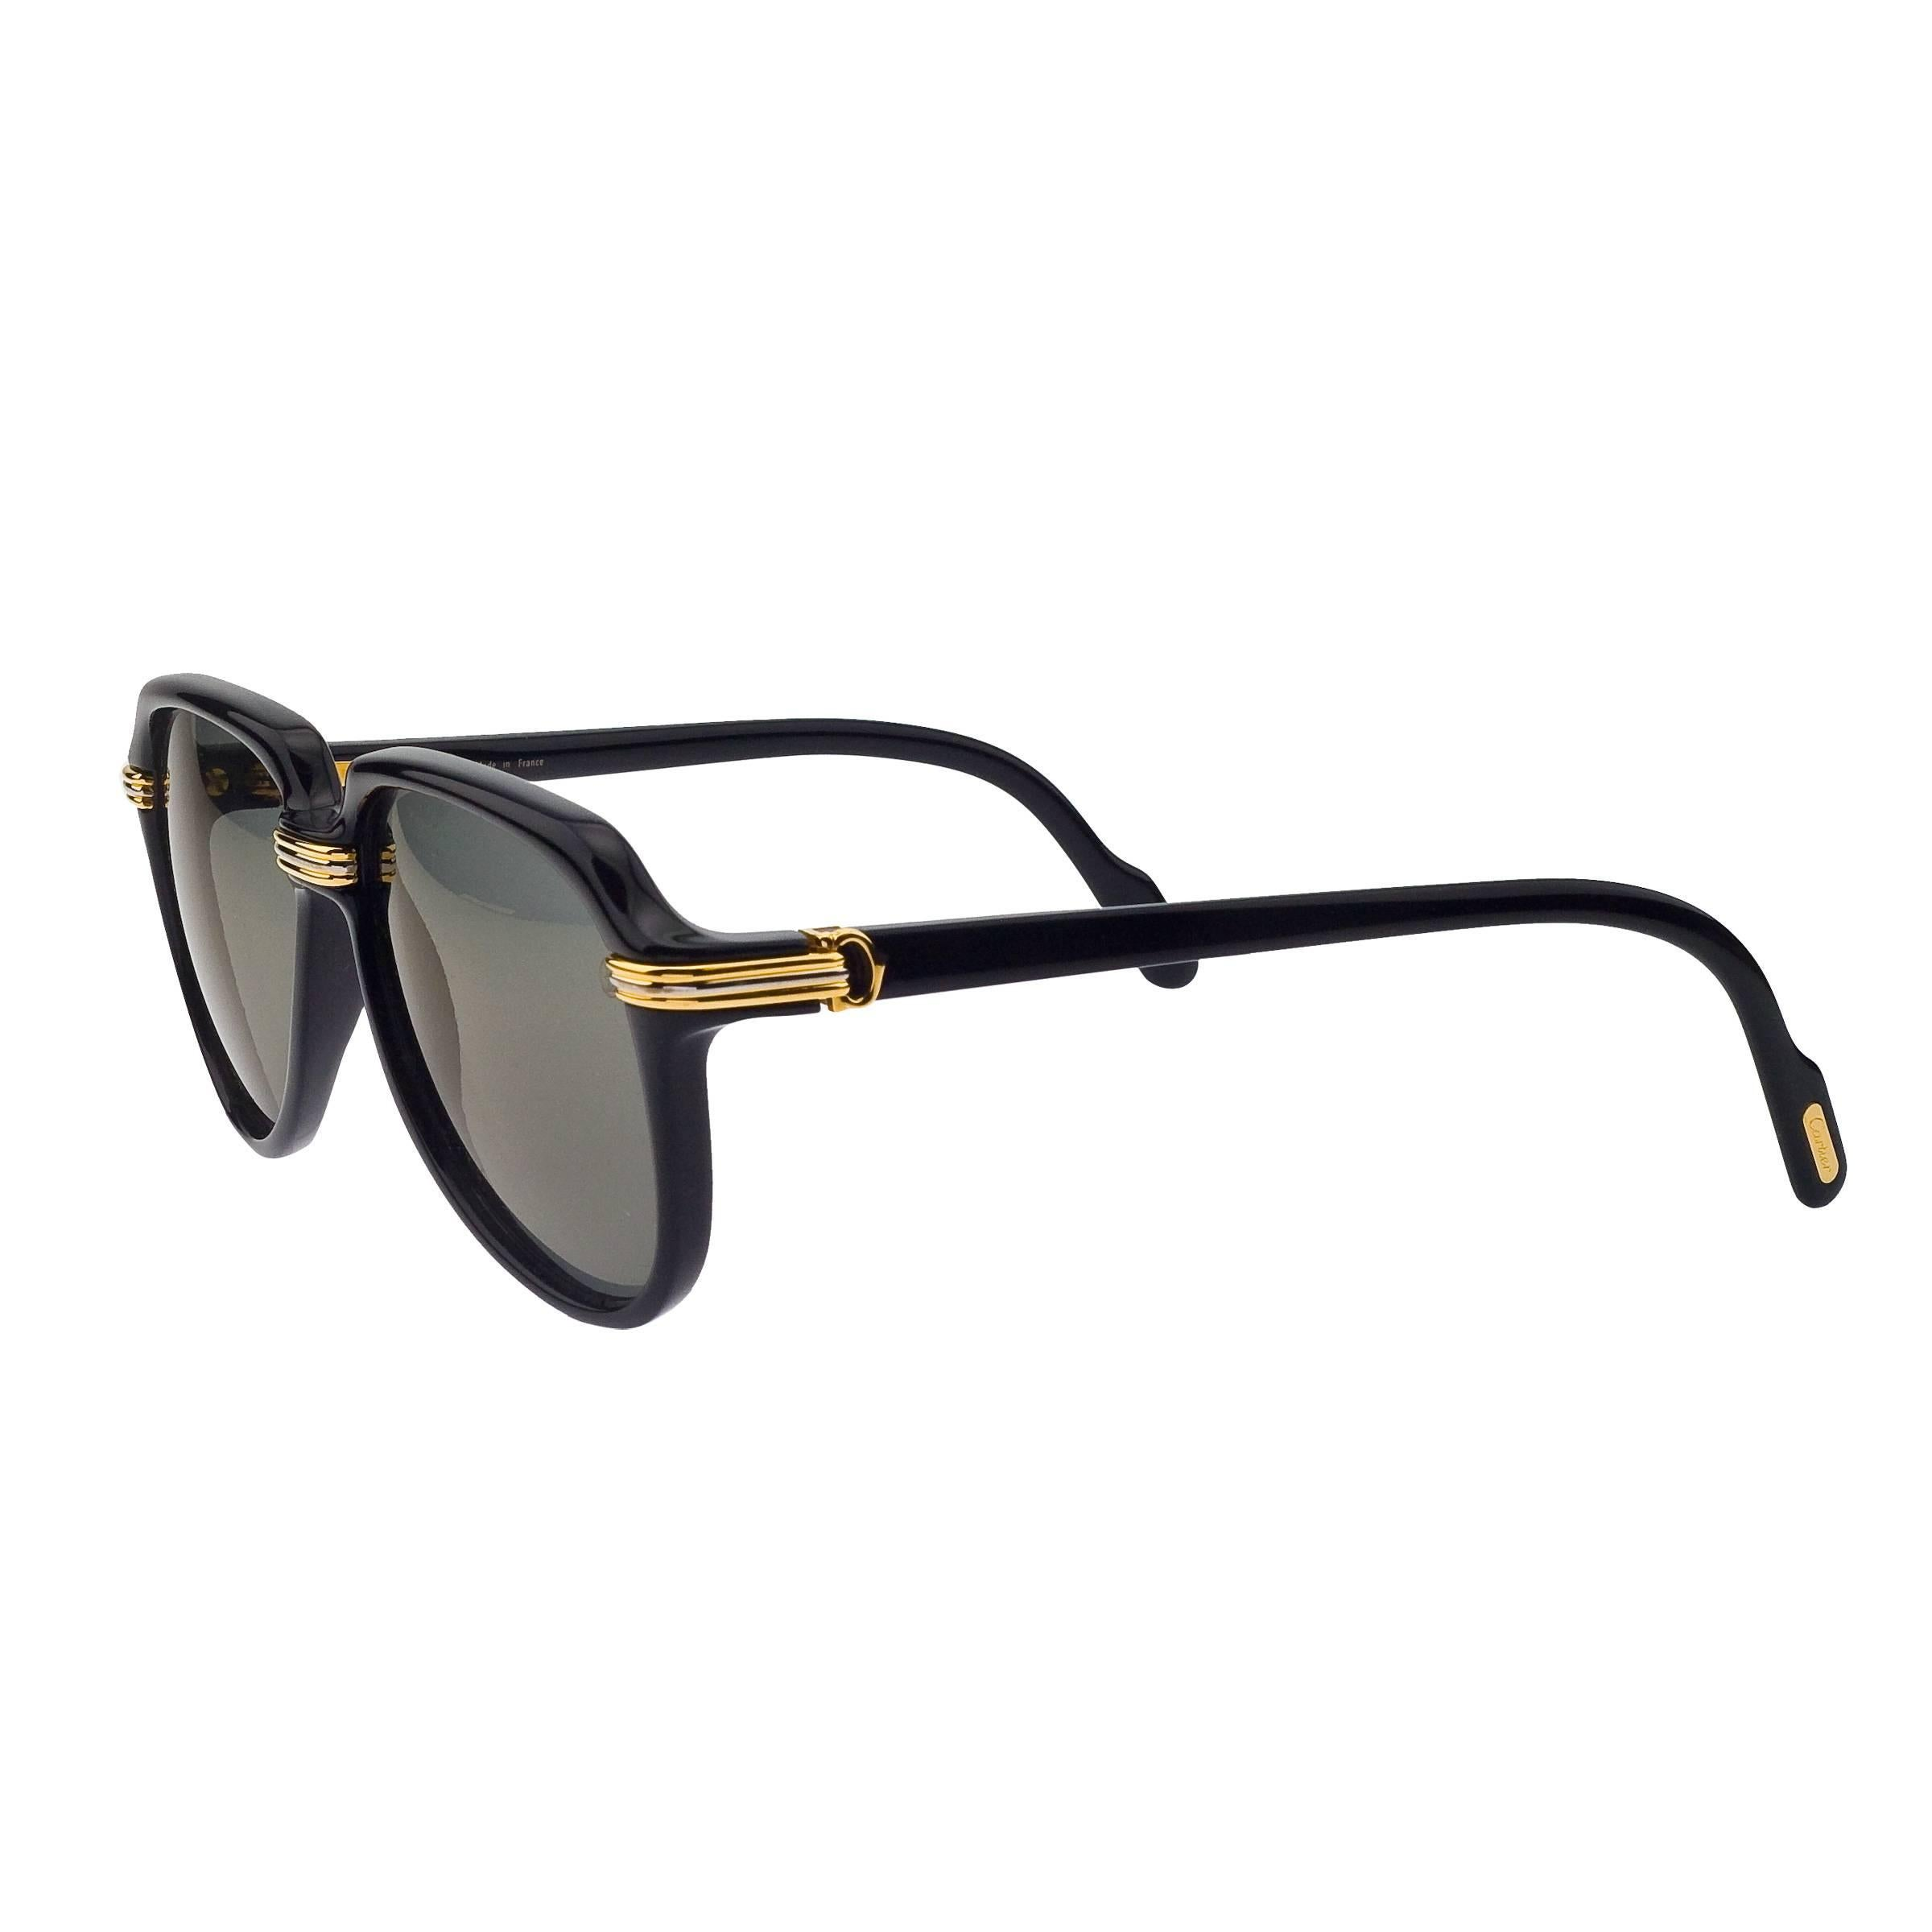 ad5ae0e13b Vintage Cartier Sunglasses - 156 For Sale at 1stdibs